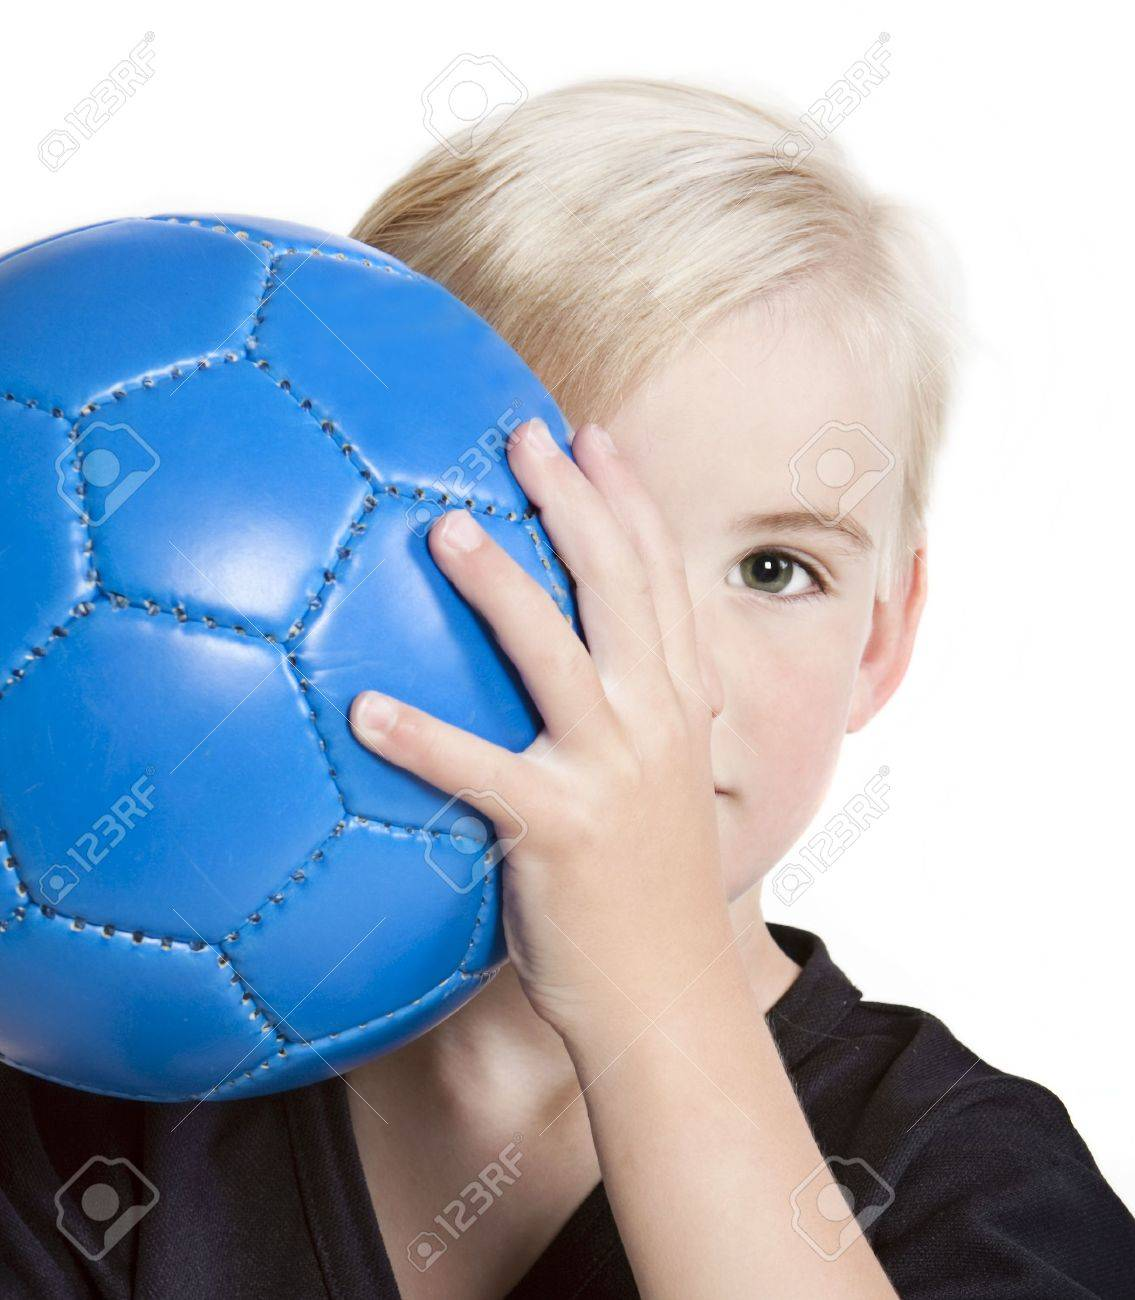 Young (preschool age) boy with blue soccer ball partially hidden behind face. Stock Photo - 7230204